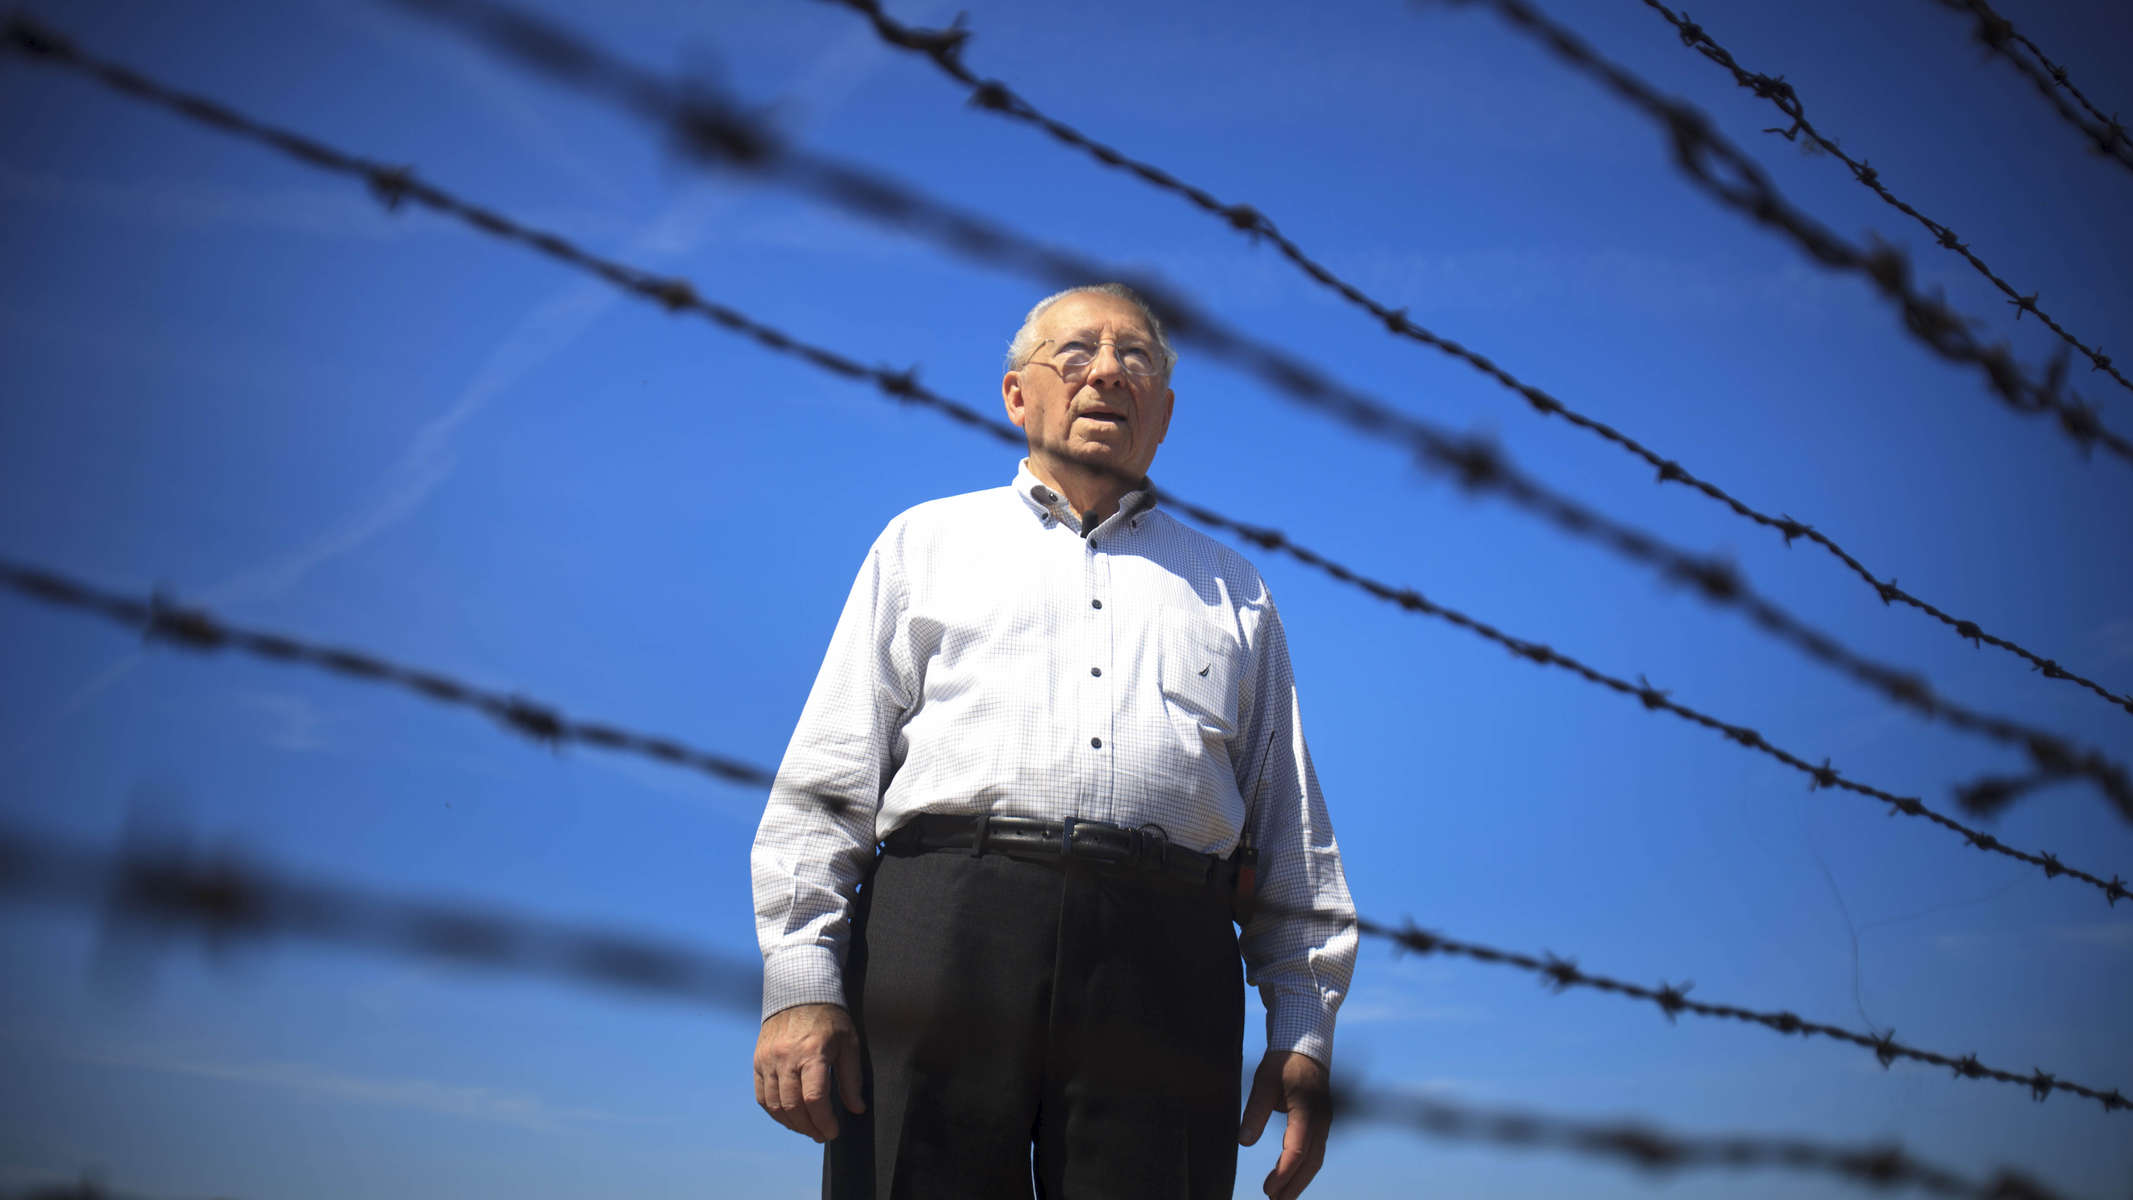 Oświęcim, Poland - 4/27/2012 -  On April 27, Israel {quote}Izzy{quote} Arbeiter, 87, pauses during a final visit to the Auschwitz-Birkenau concentration camp, where he was a prisoner in 1944.  An estimated 1.1 million of the 1.3 million people who came through the camp were killed, mostly in gas chambers, although Izzy also remembers prisoners throwing themselves on the fences to die, rather than wait for the Nazis to kill them. Story by David Filipov/Globe Staff. Dina Rudick/Globe Staff